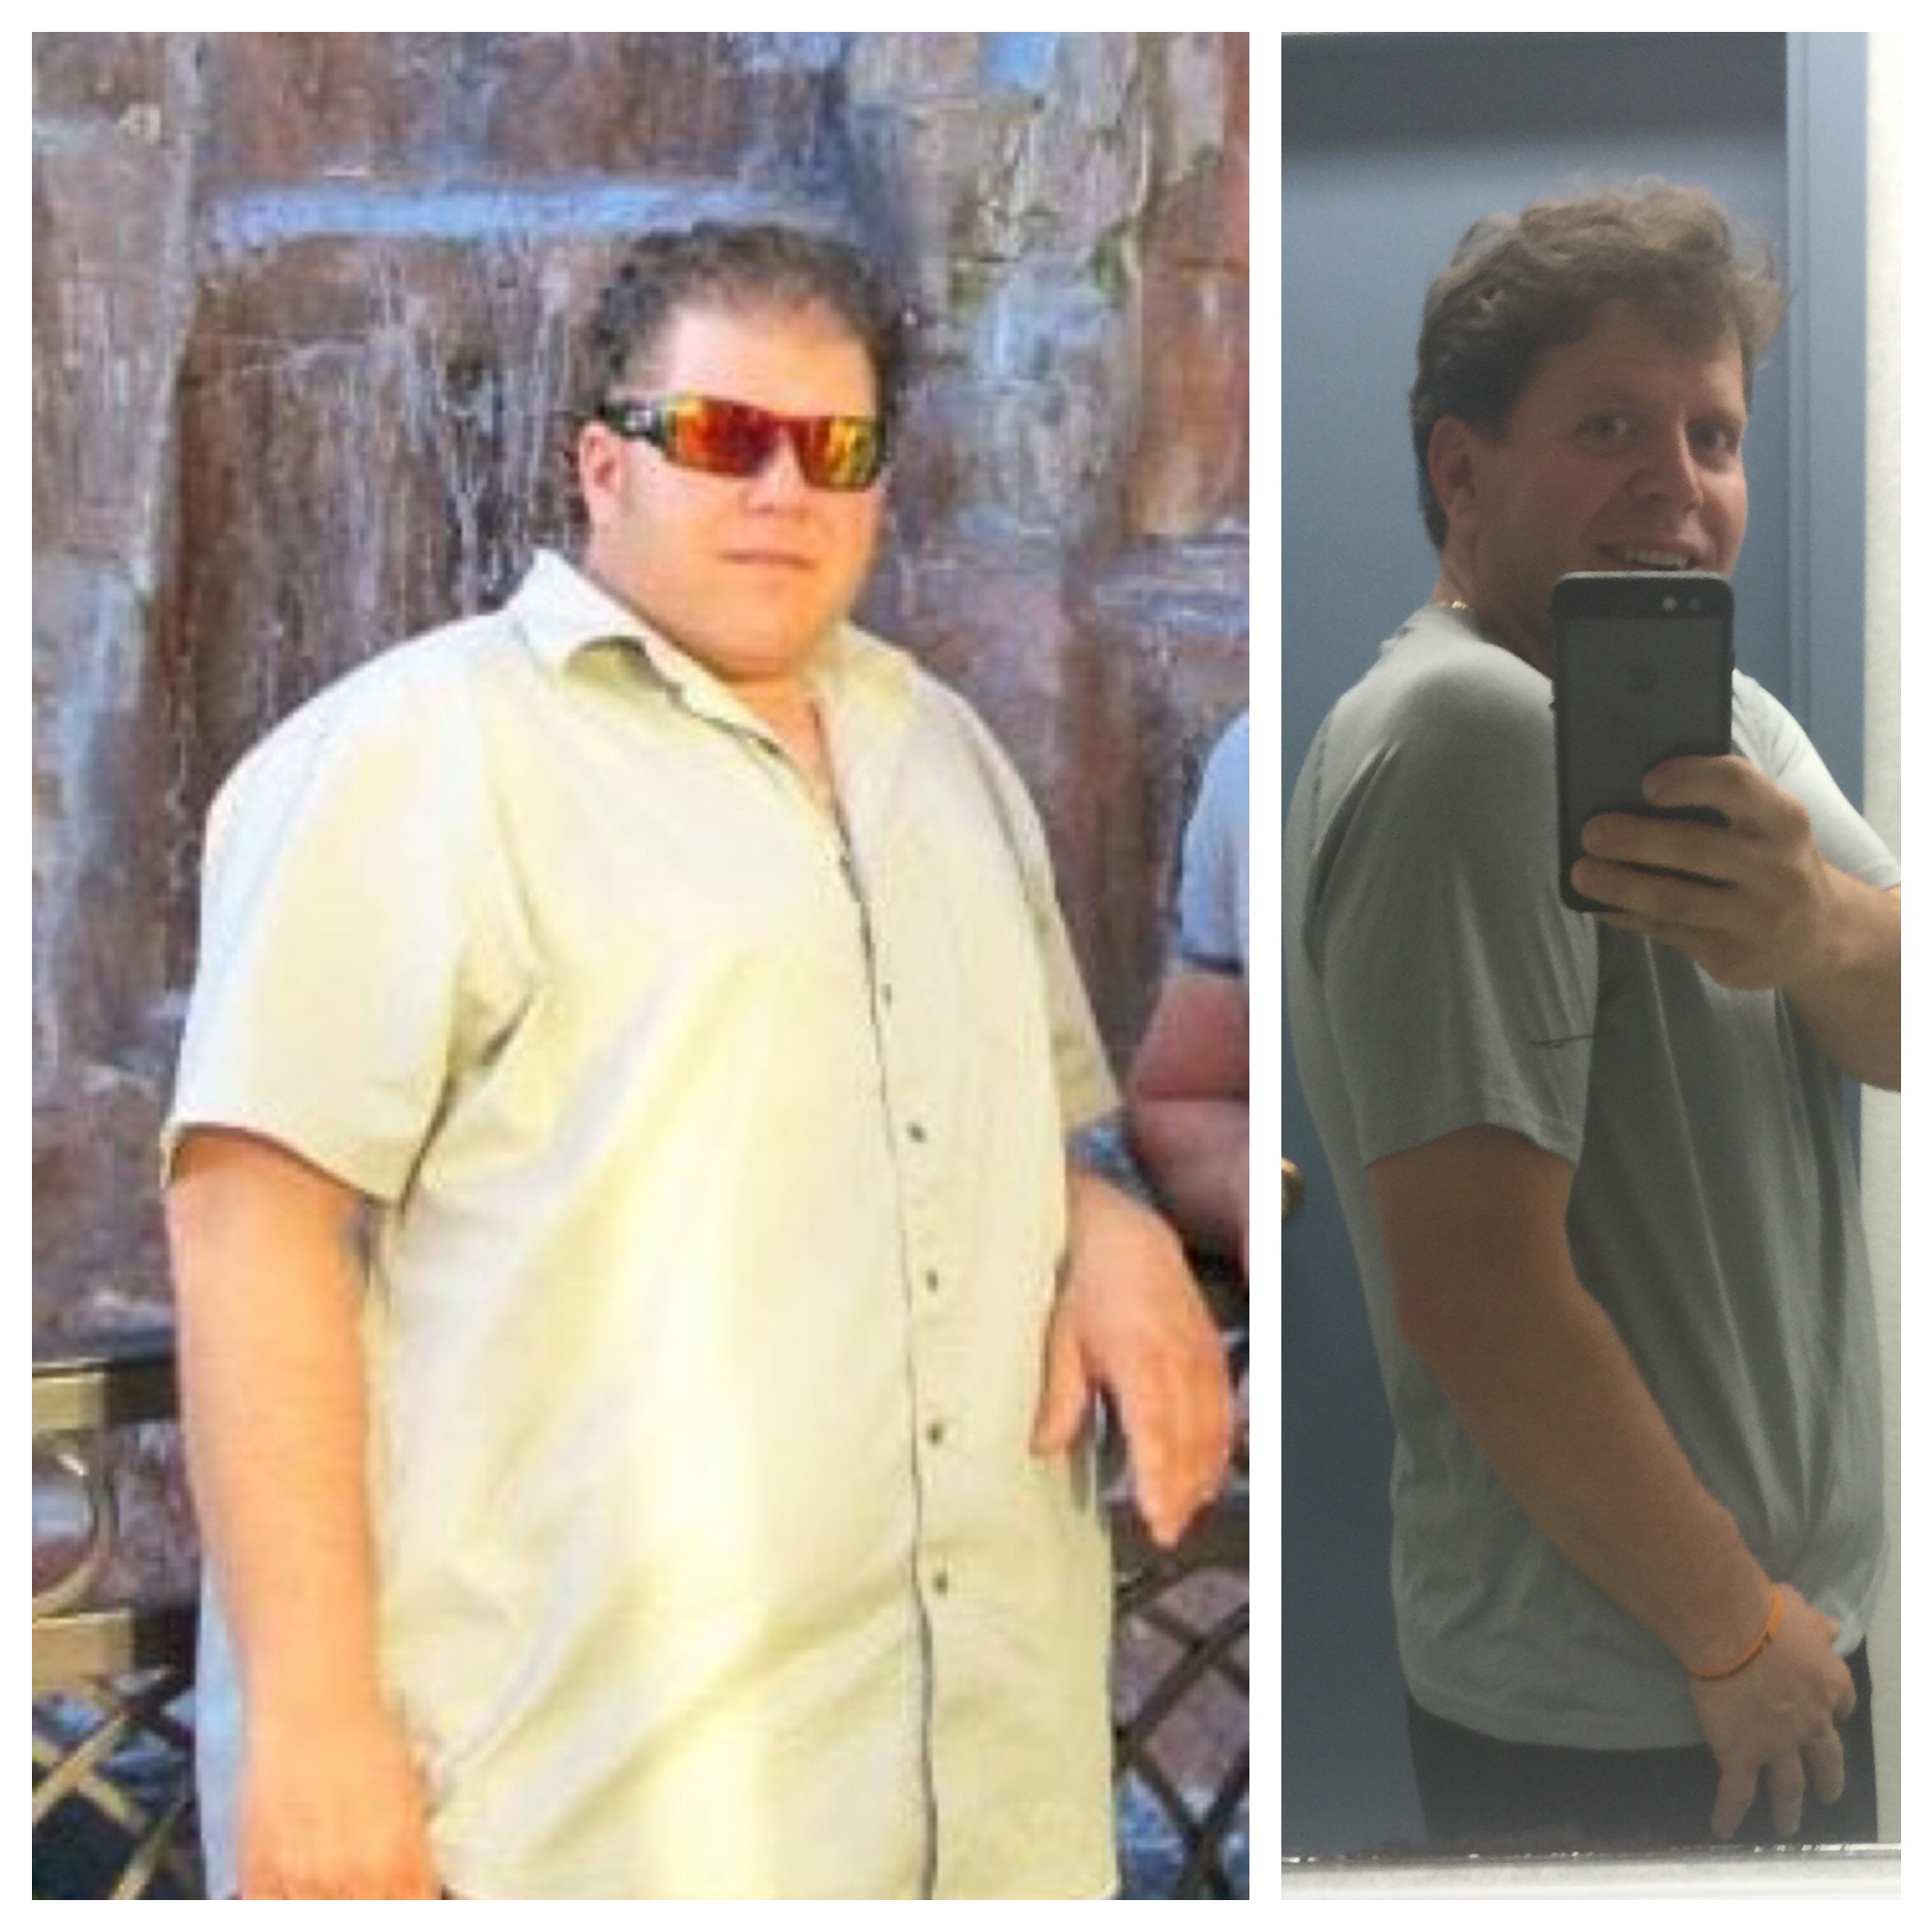 Great success story! Read before and after fitness transformation stories from women and men who hit weight loss goals and got THAT BODY with training and meal prep. Find inspiration, motivation, and workout tips | 113 Pounds Lost: Enough is Enough!